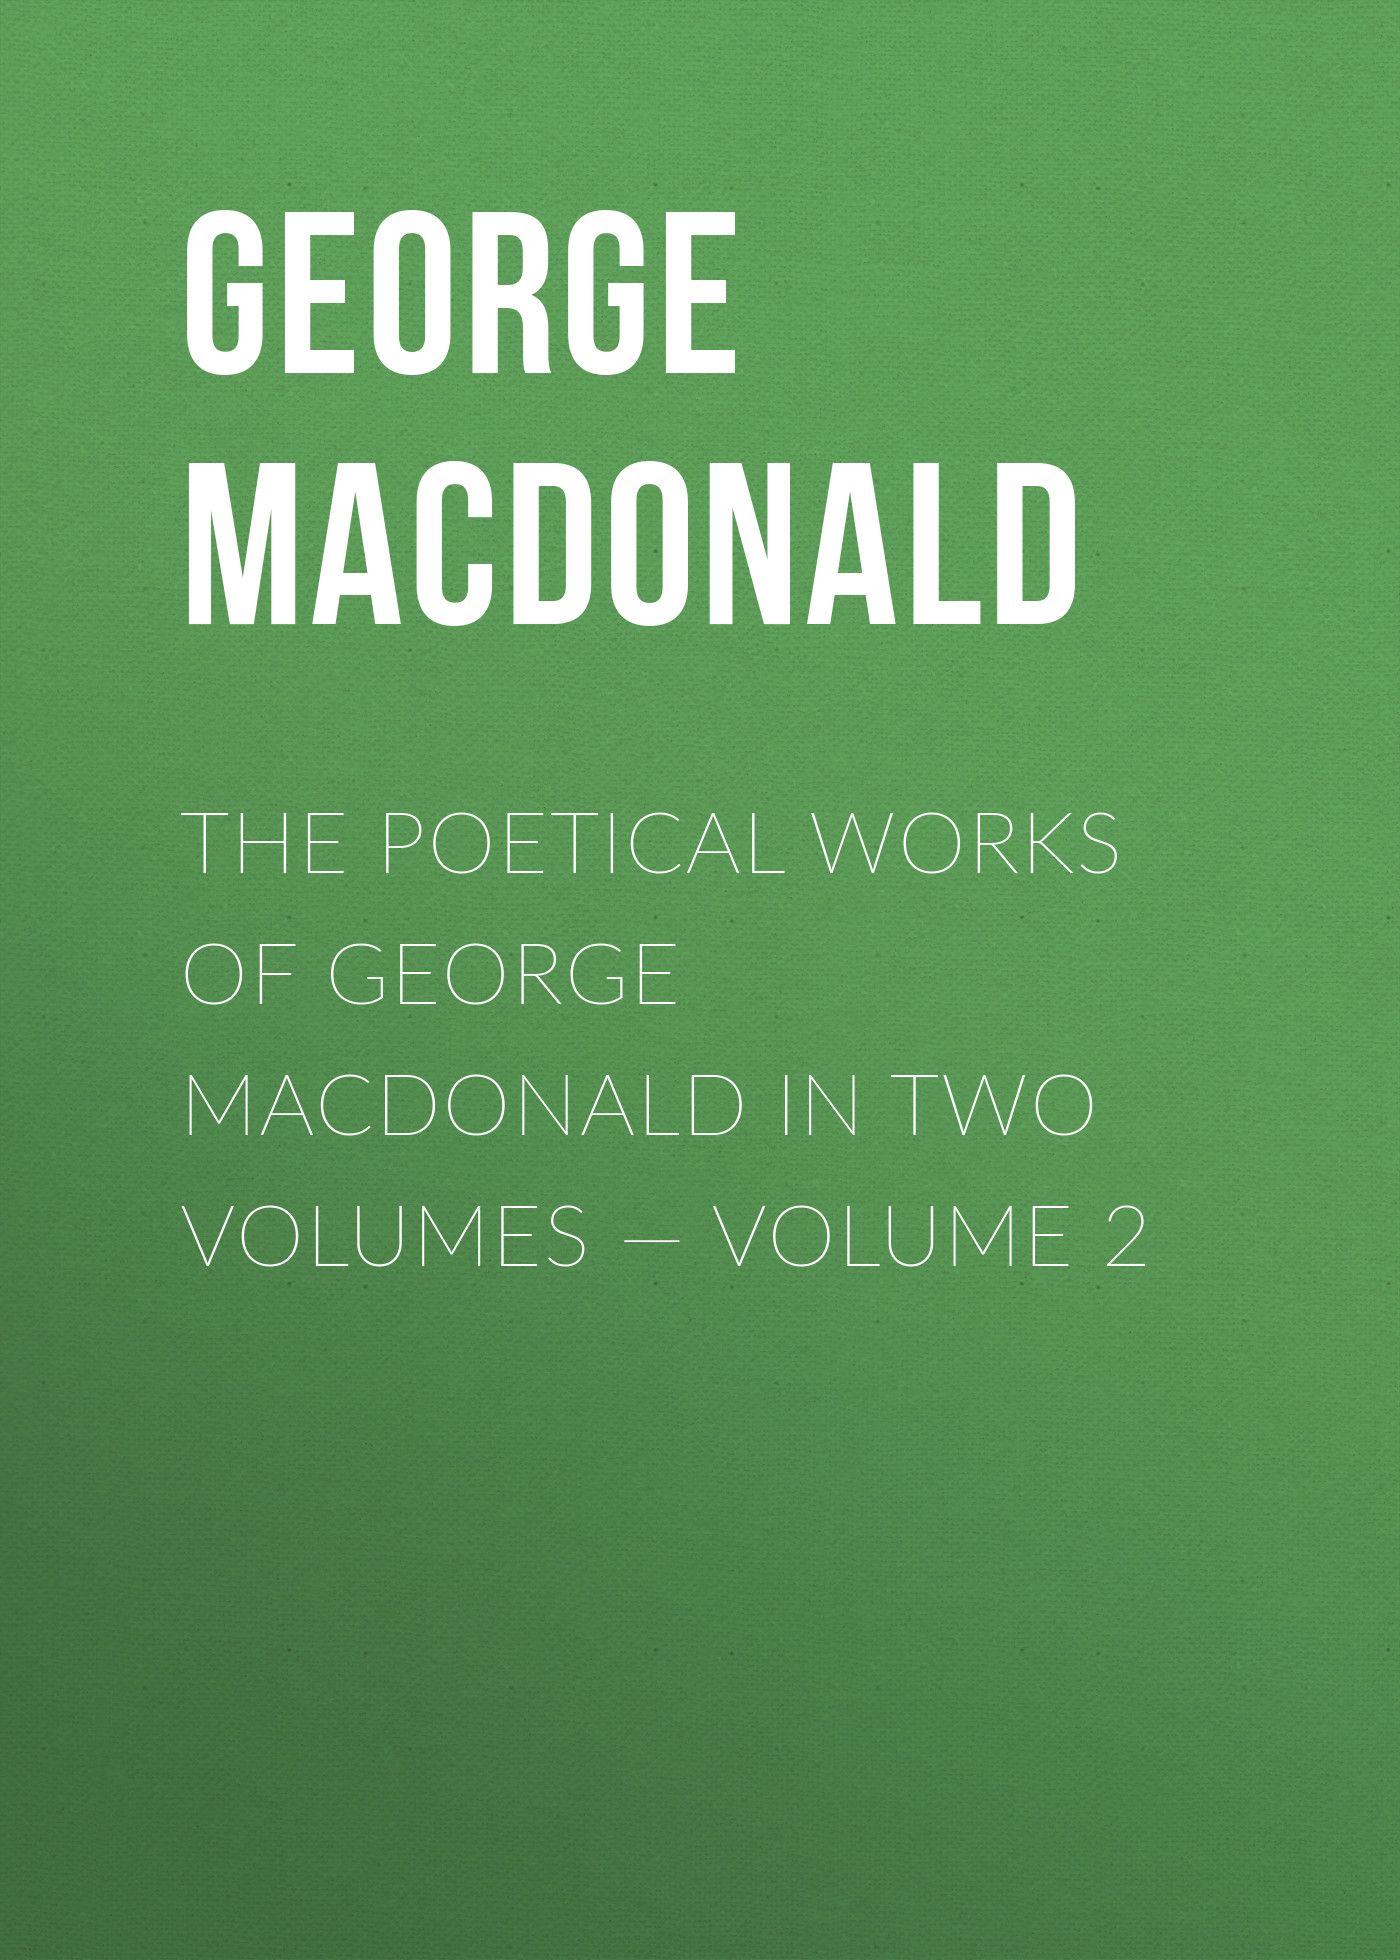 George MacDonald The poetical works of George MacDonald in two volumes — Volume 2 george macdonald st george and st michael